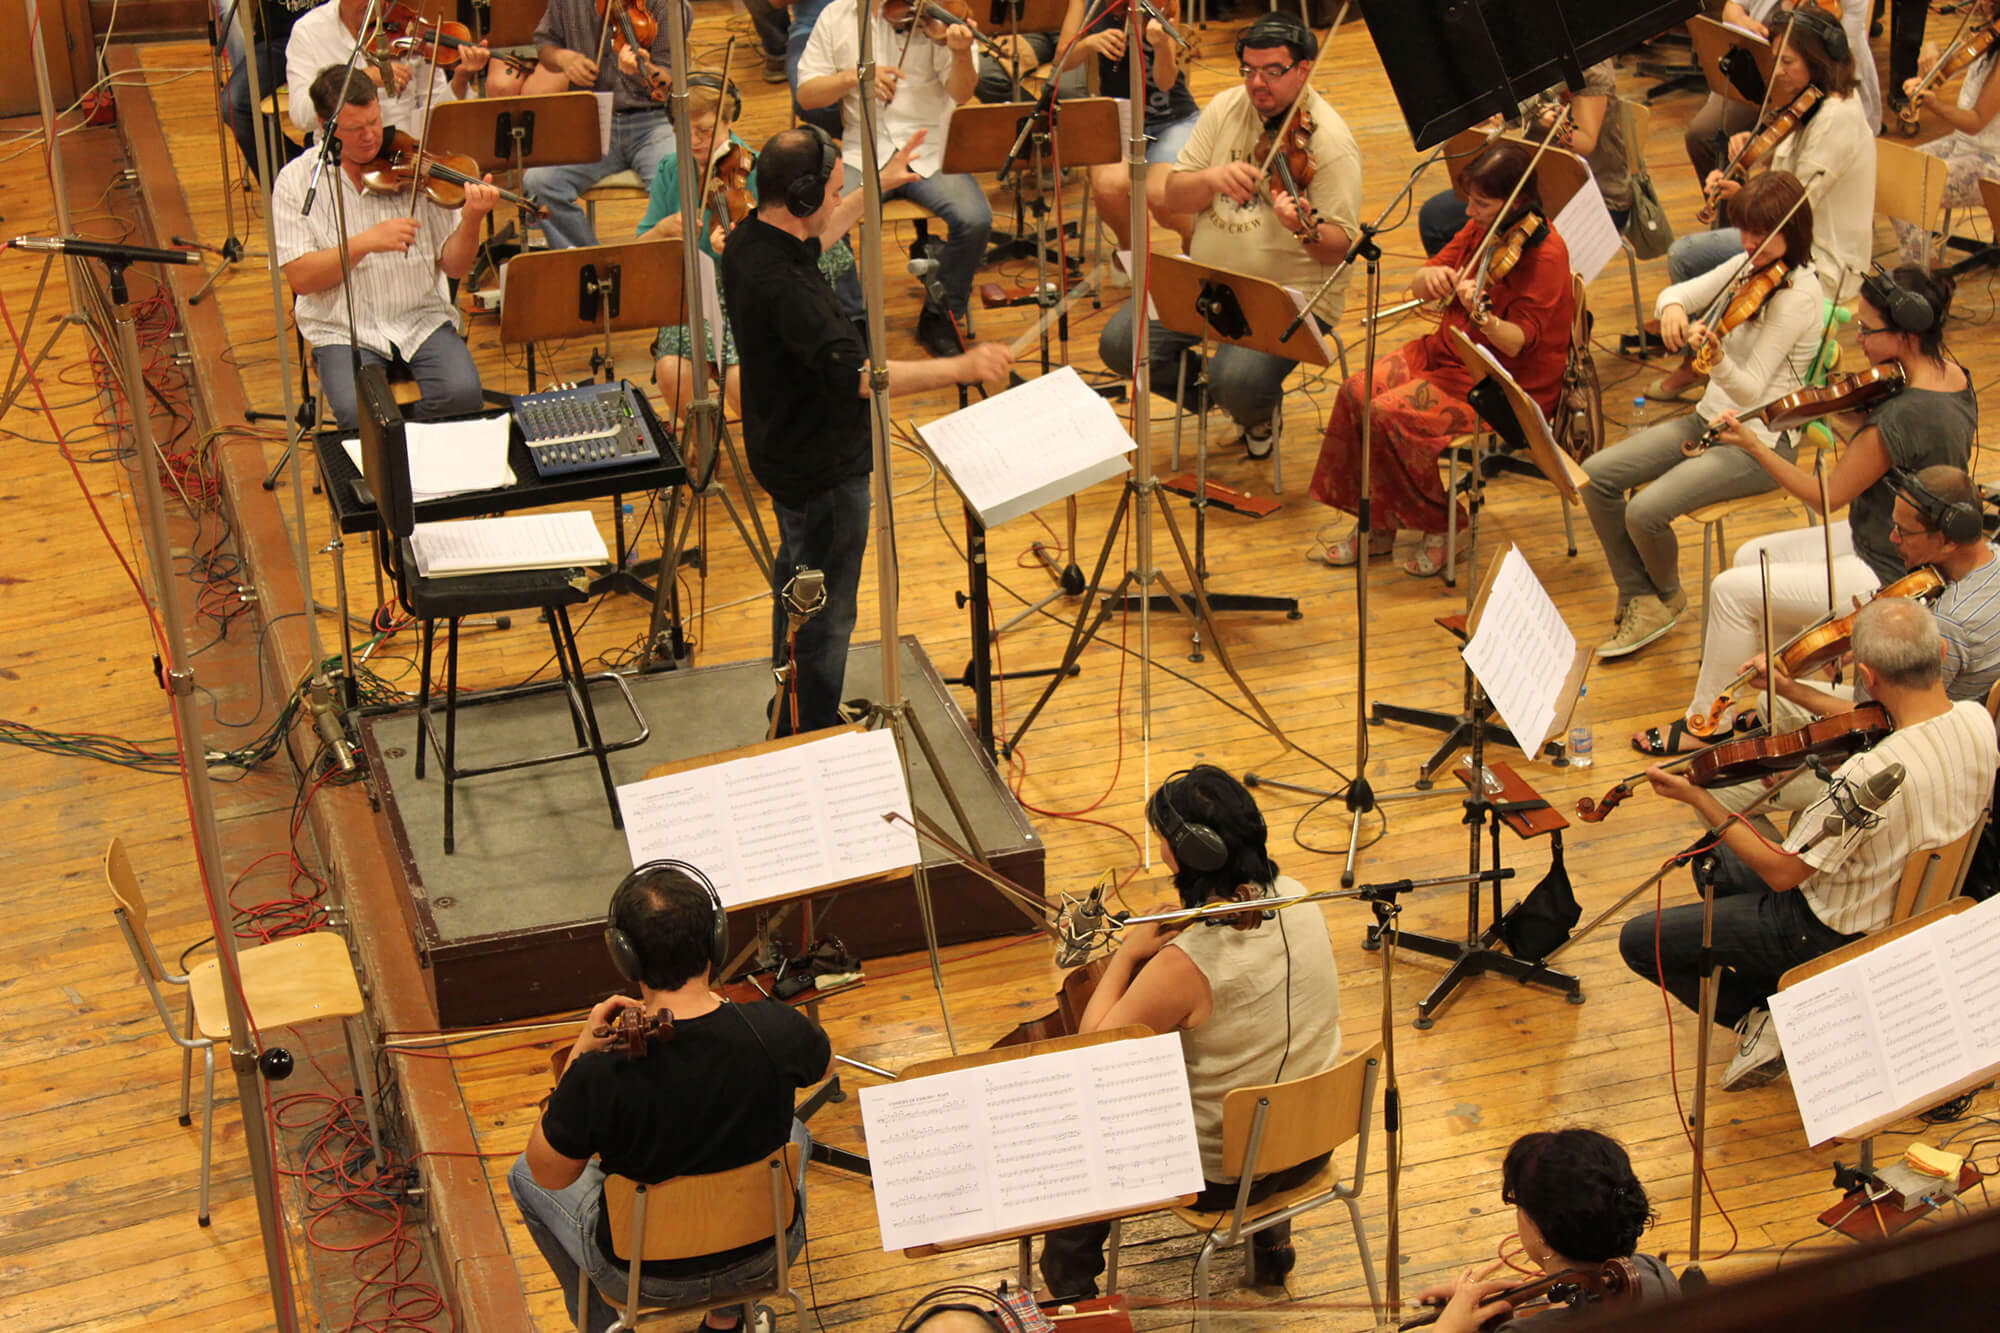 Adam conducting the Bulgarian Film Orchestra.